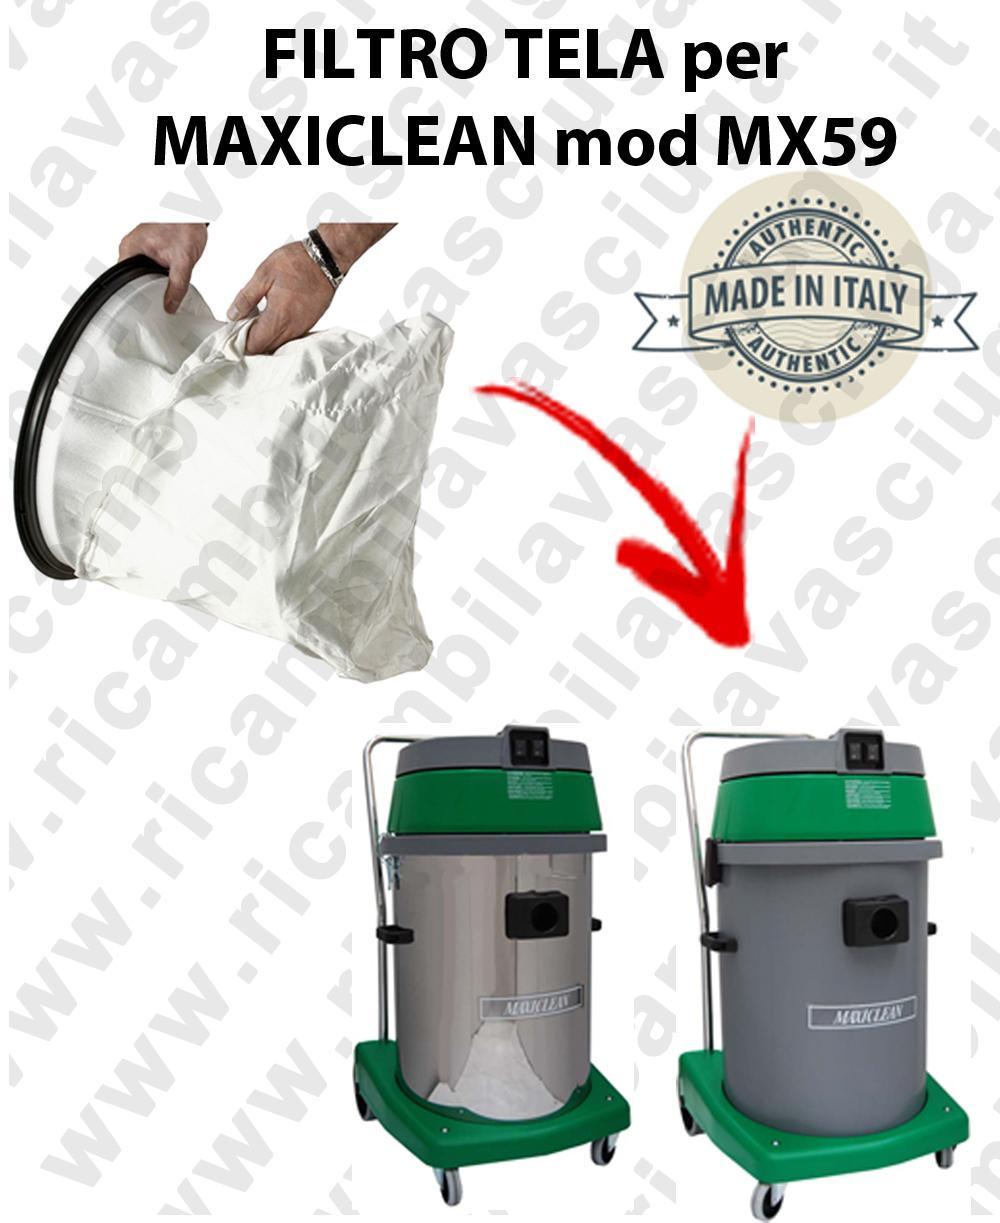 NYLON filter bag cod: 3001220 for vacuum cleaner MAXICLEAN model MX59